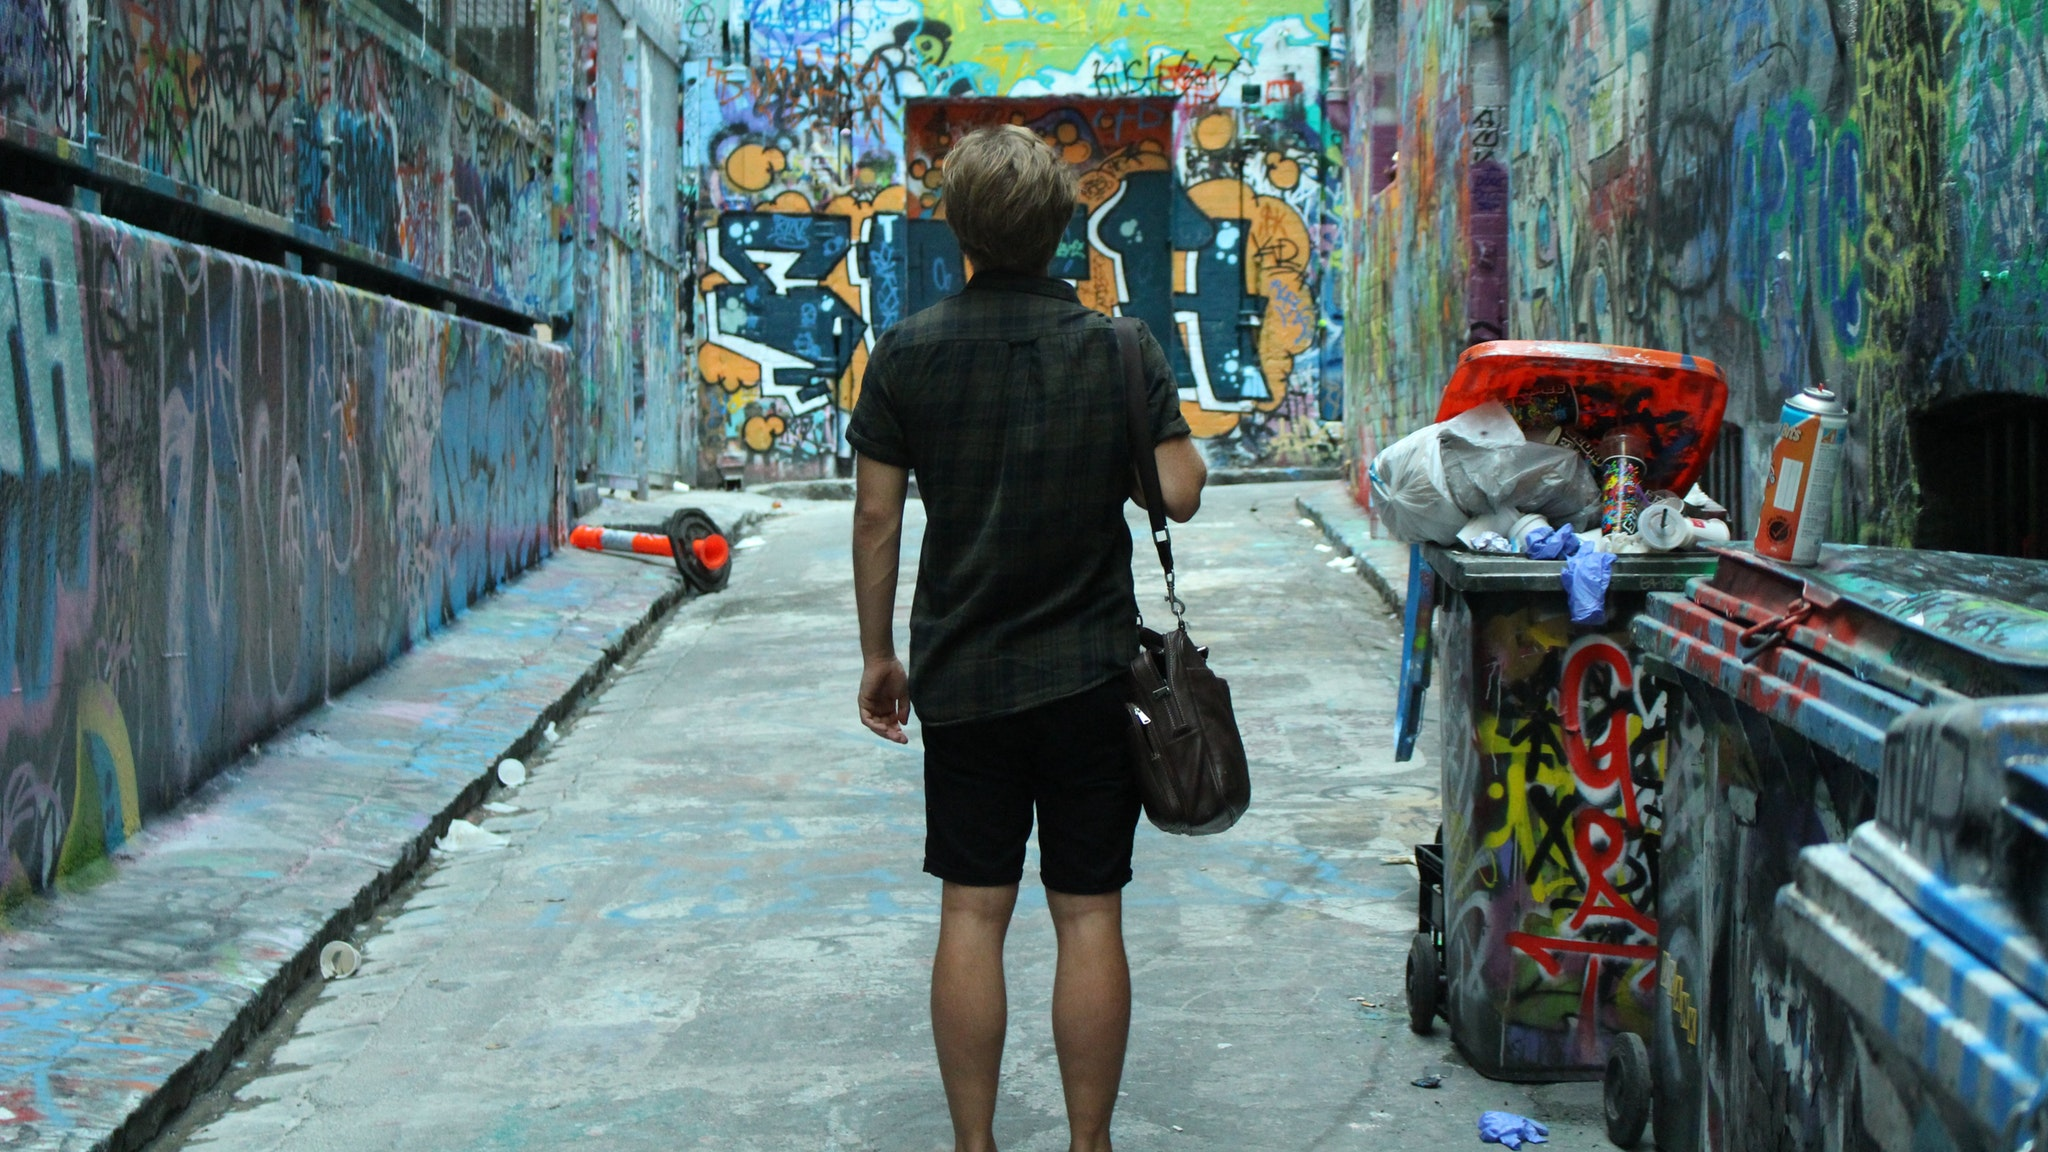 Welcome to Travel: Melbourne - this is your week